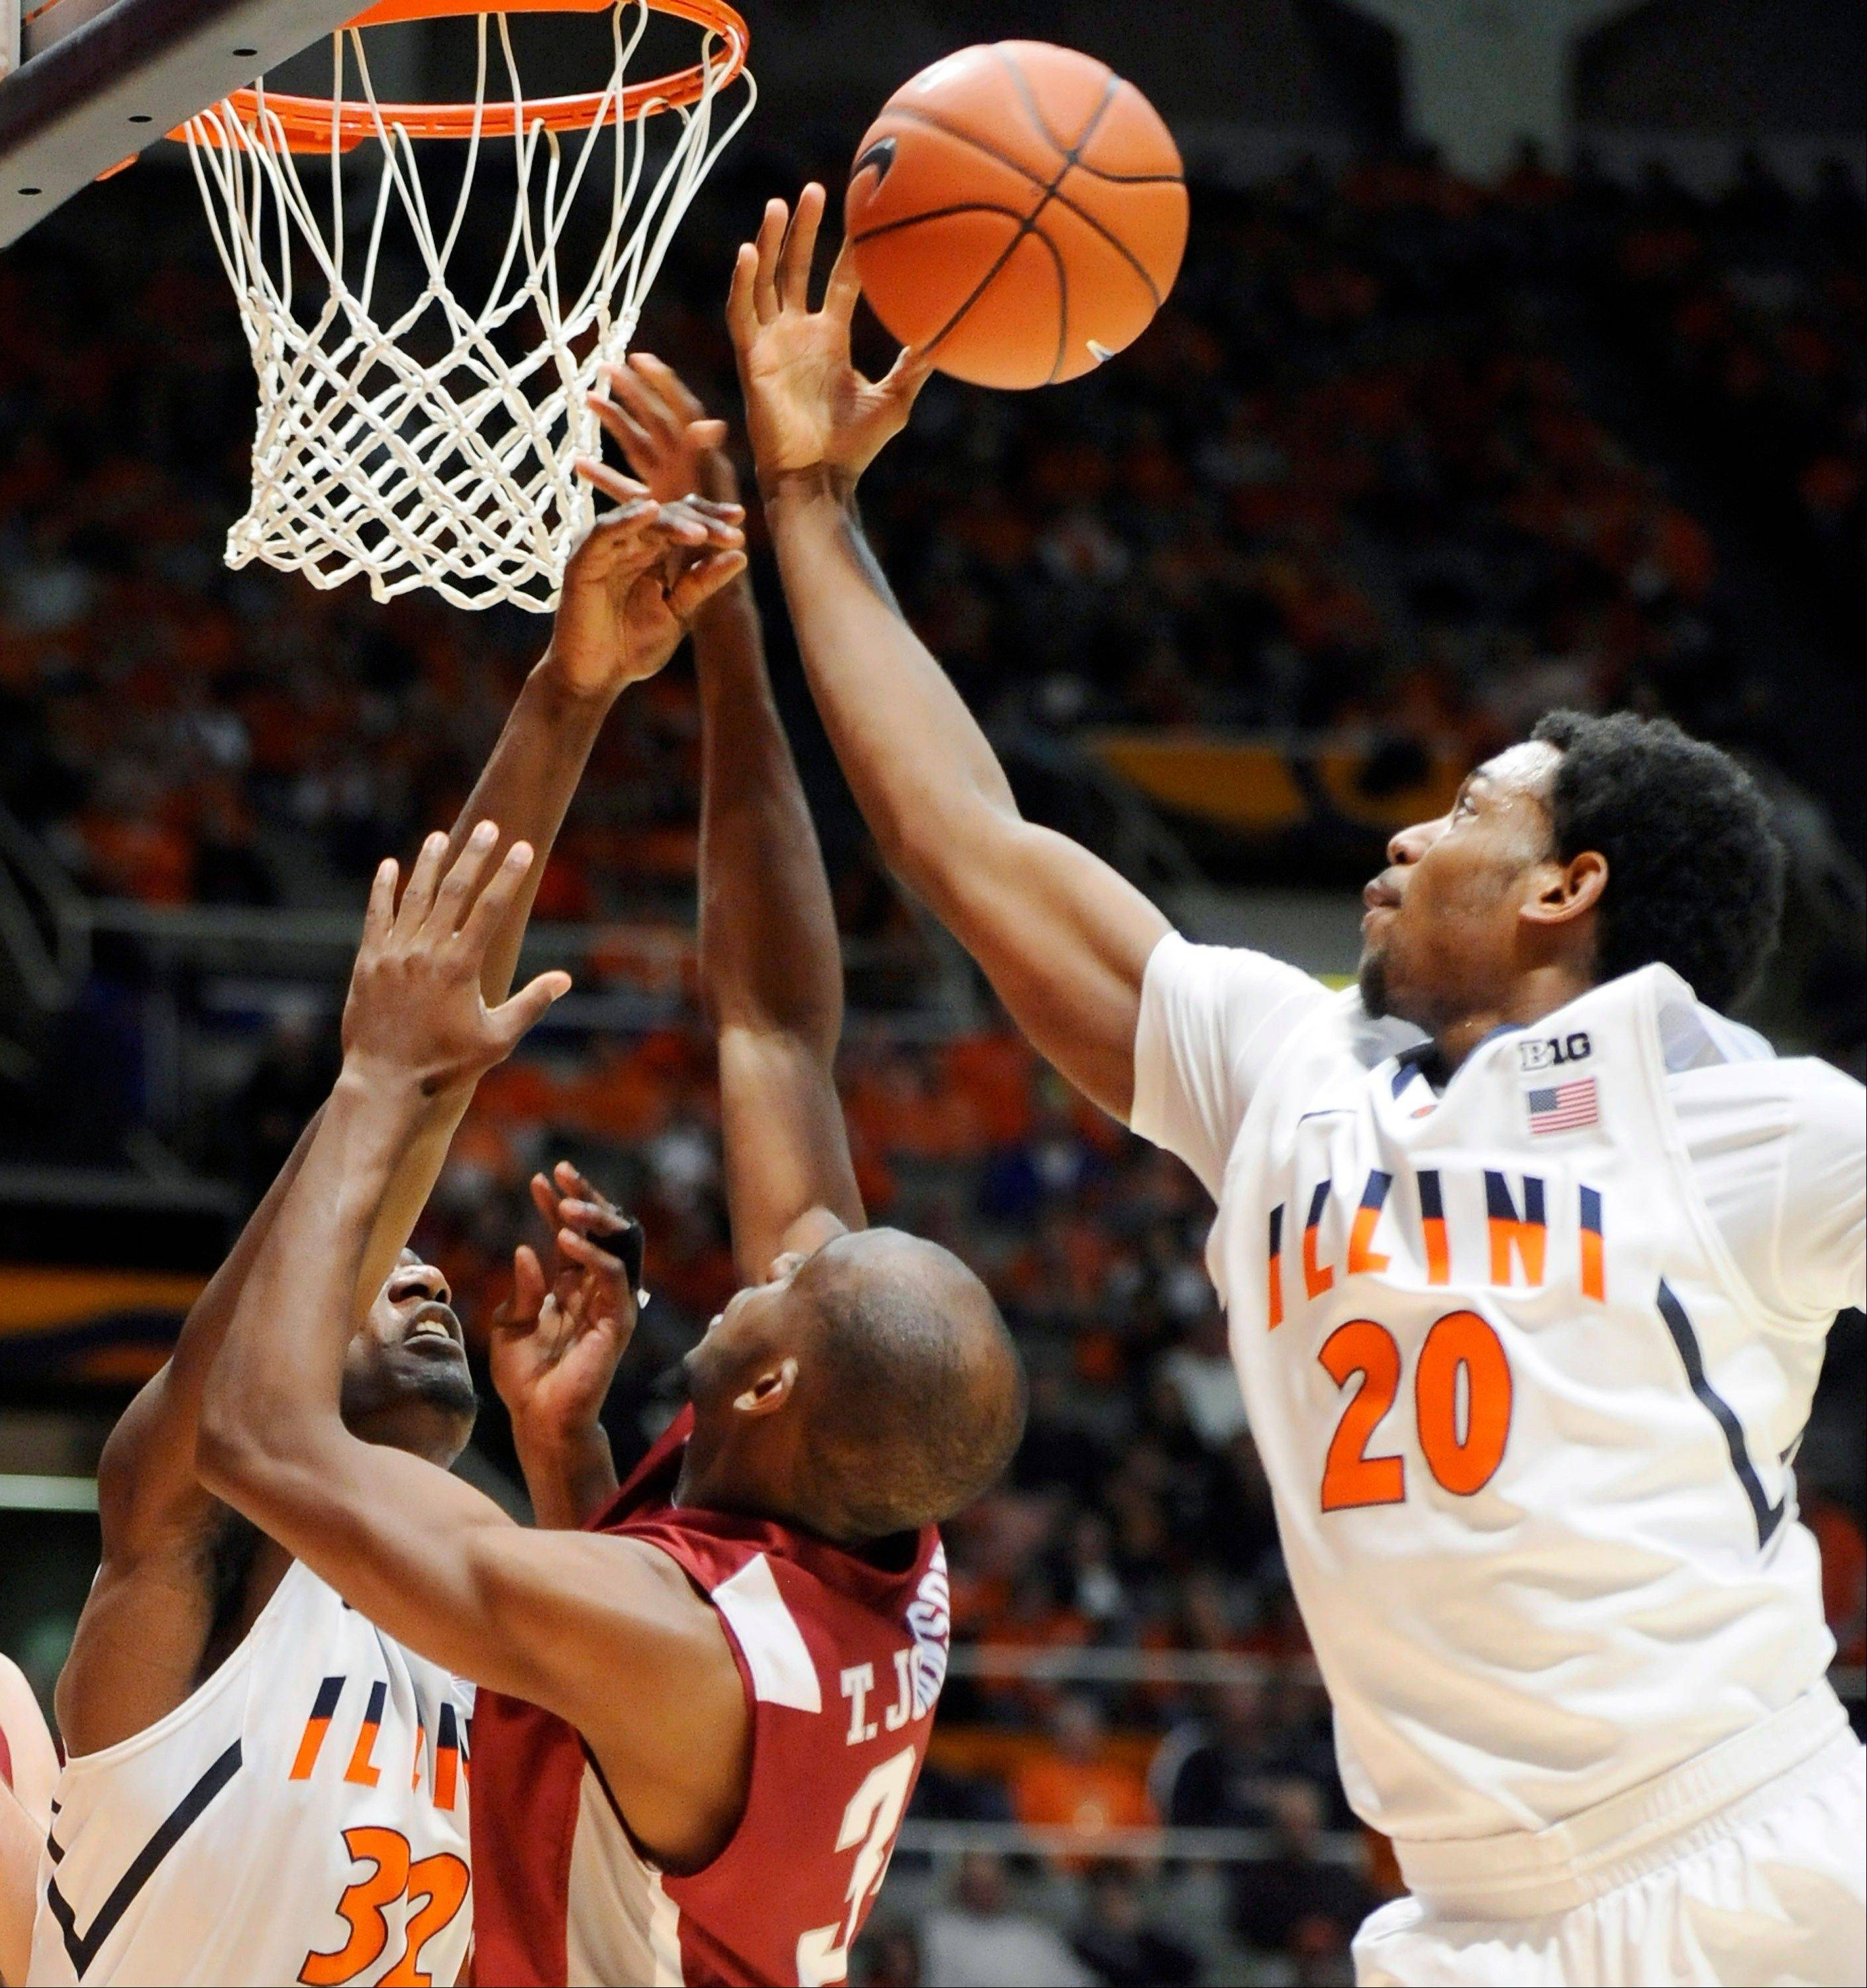 Illinois' Myke Henry (20) and Nnanna Egwu (32) fight for possession of the ball with Eastern Kentucky's guard Tarius Johnson (34) in the second half at Assembly Hall in Champaign, Ill., Sunday. Illinois won 66-53.